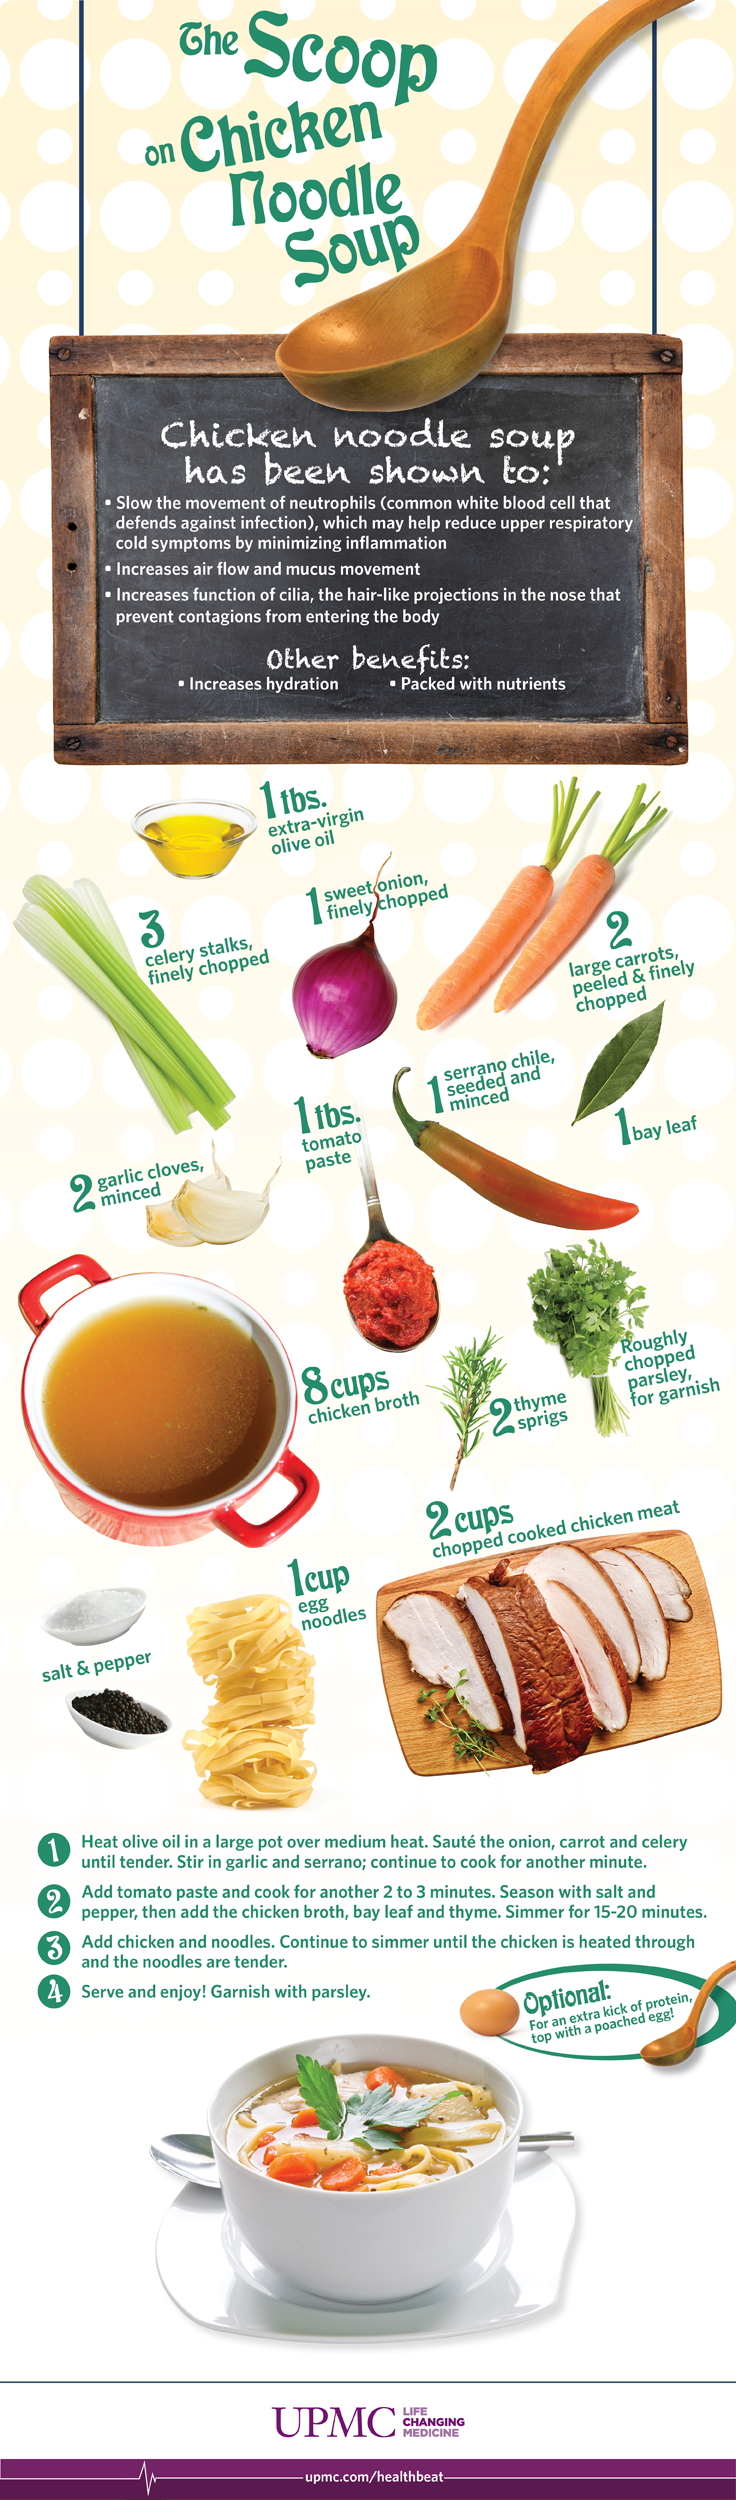 Health Benefits of Chicken Noodle Soup